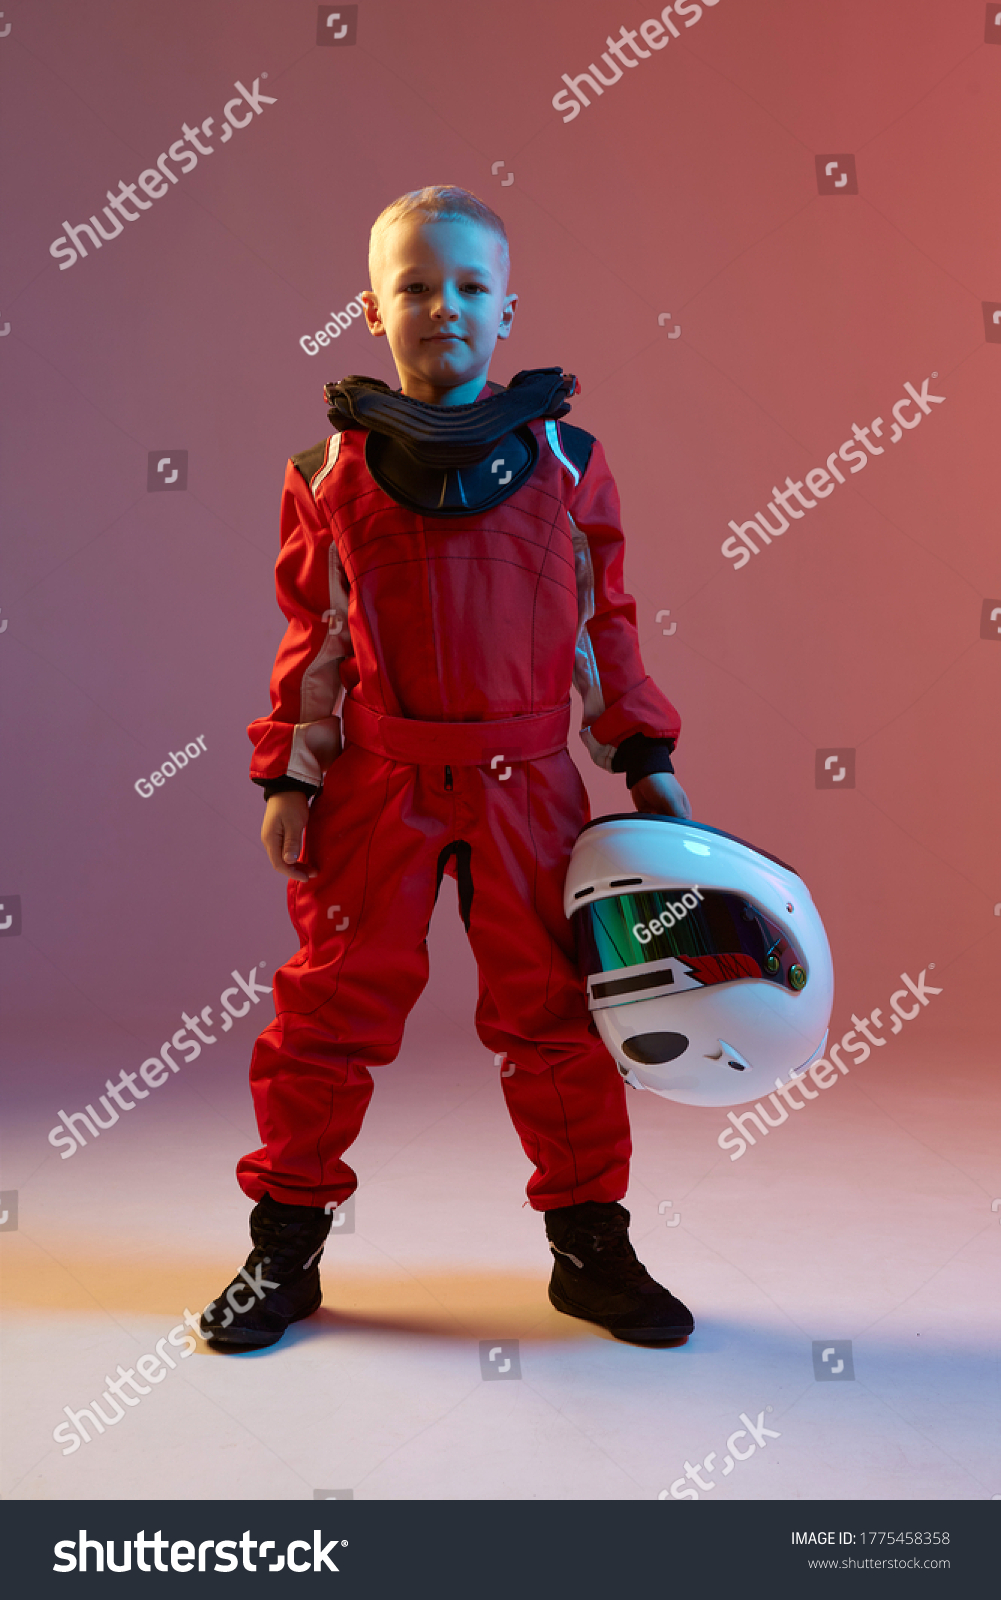 Cool boy child racer with helmet, standing in neon light. Kart racing school poster. Competition announcement #1775458358